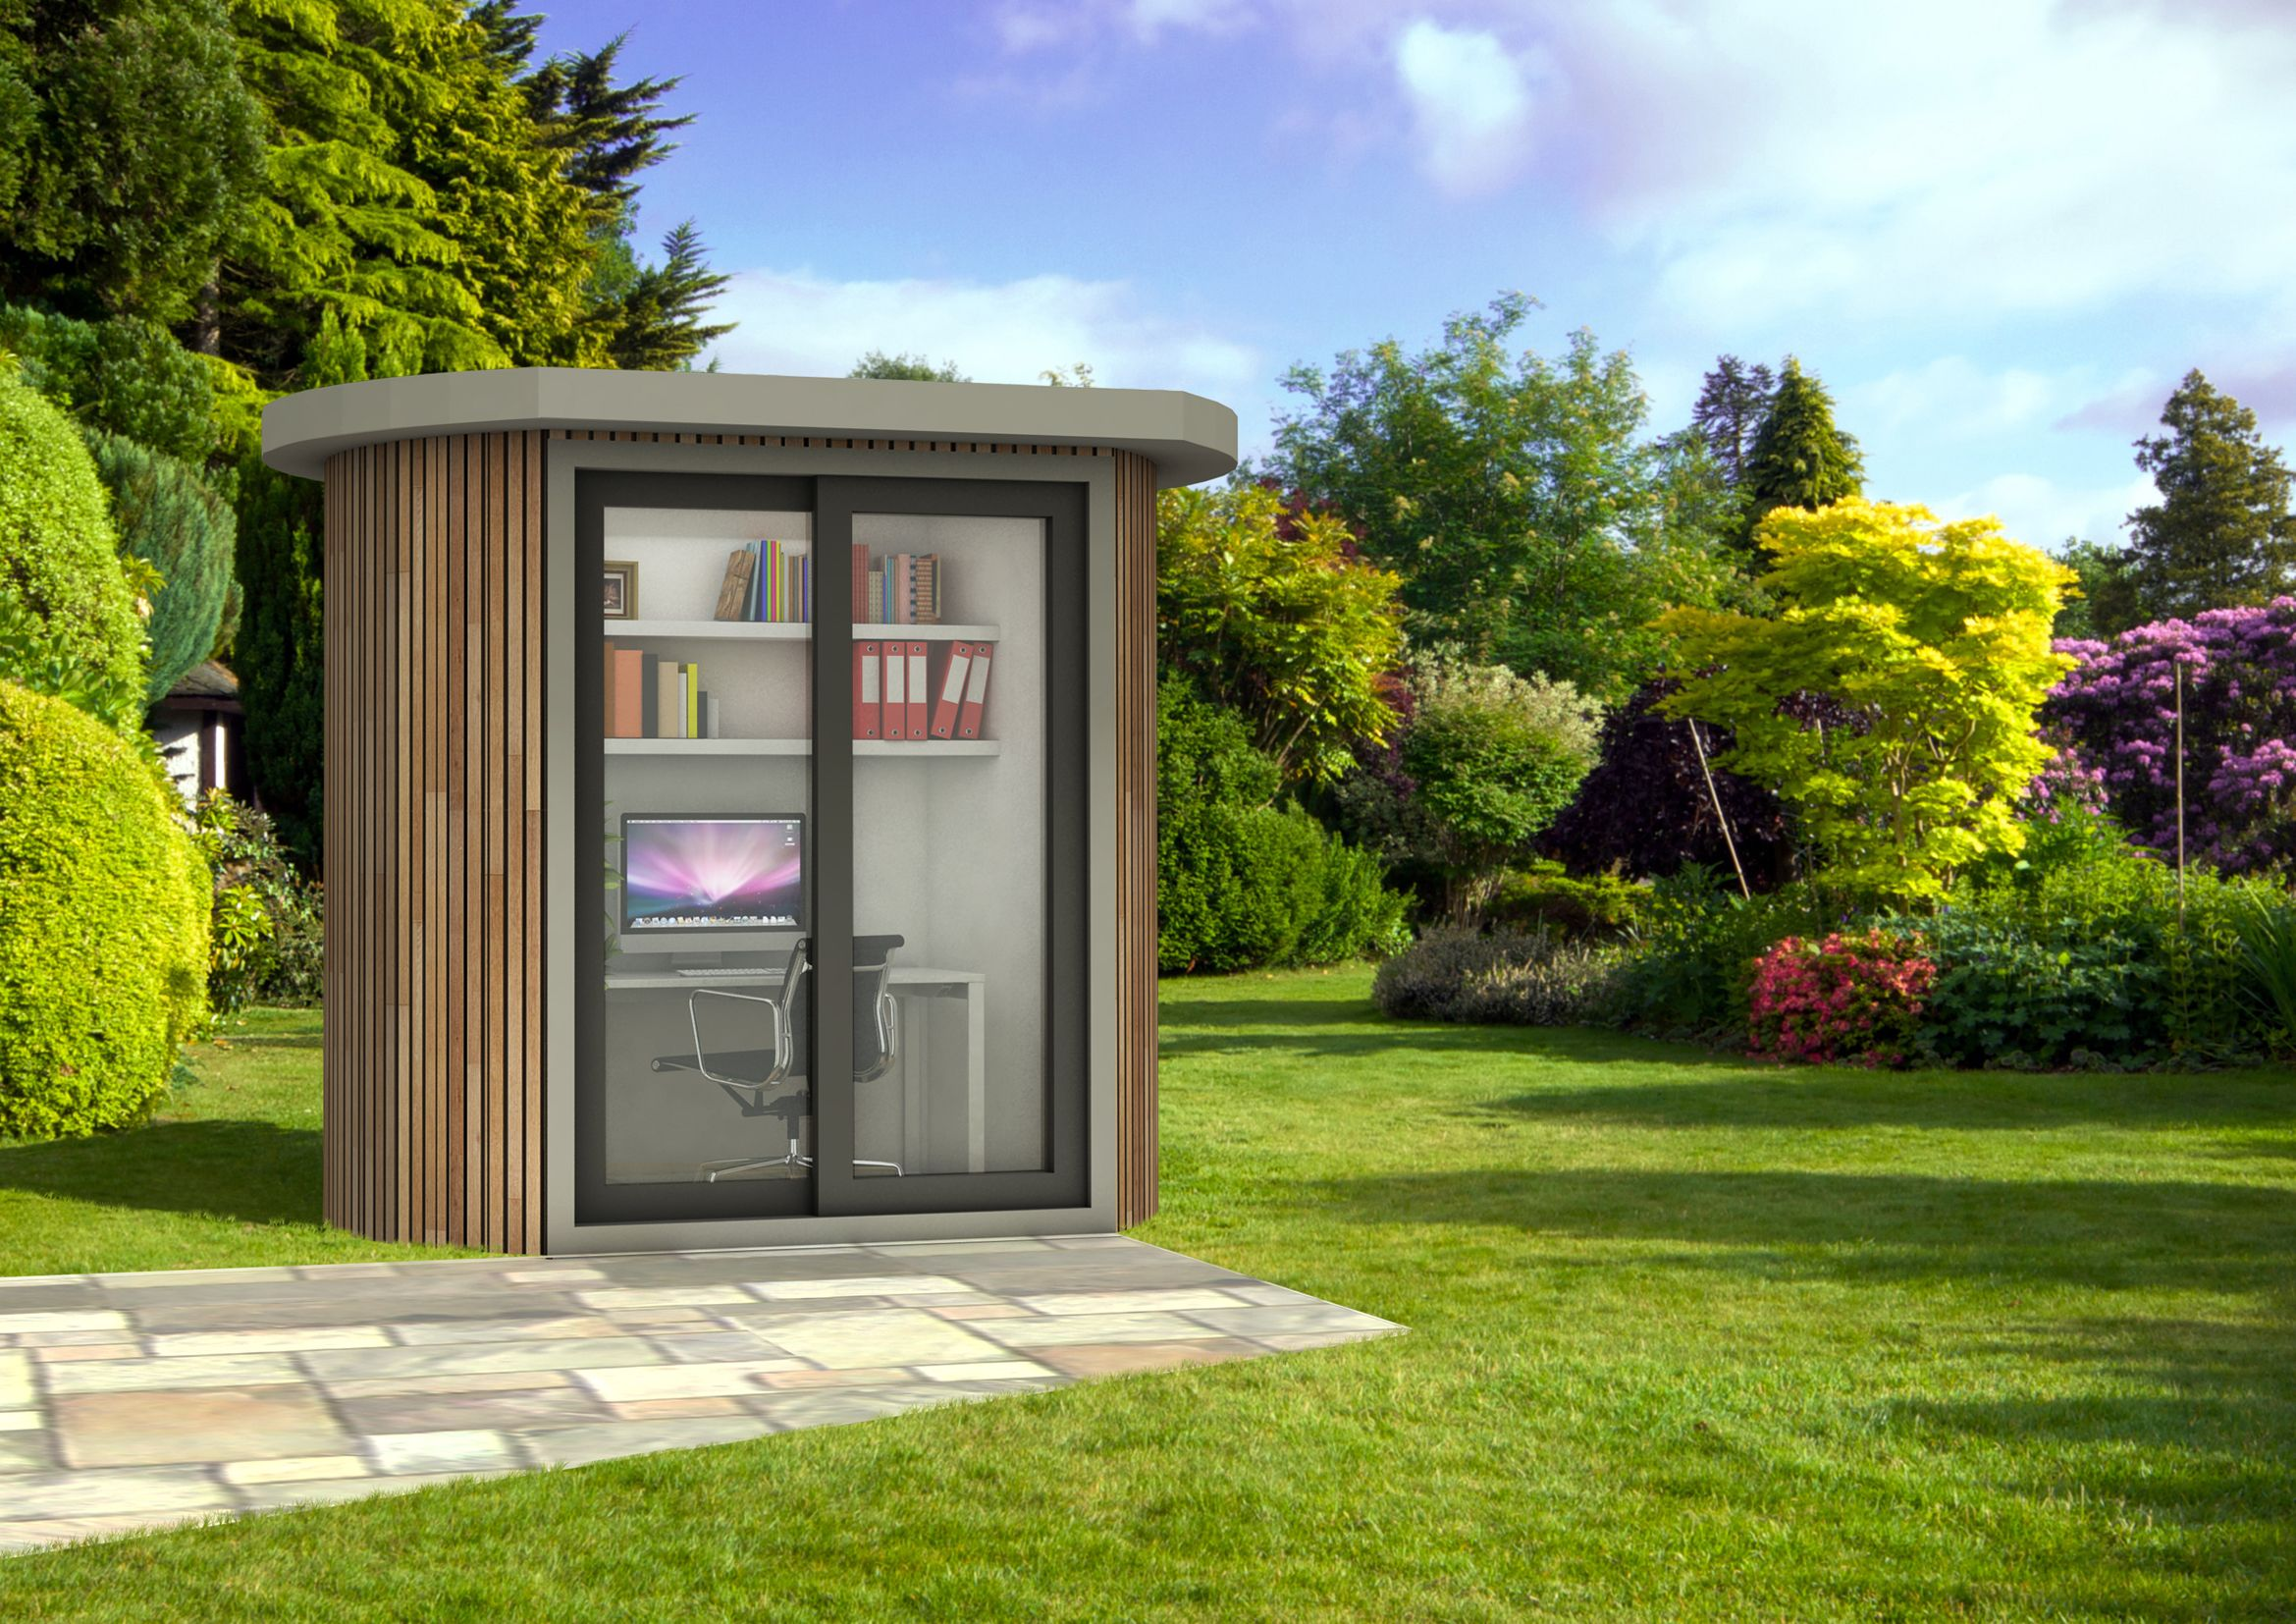 Wonderful Garden Rooms Design Ideas Part - 10: Small Garden Shed Garden Office Pods Ideas Modern Home Office Designs |  Awww SHED! | Pinterest | Garden Office, Office Designs And Modern